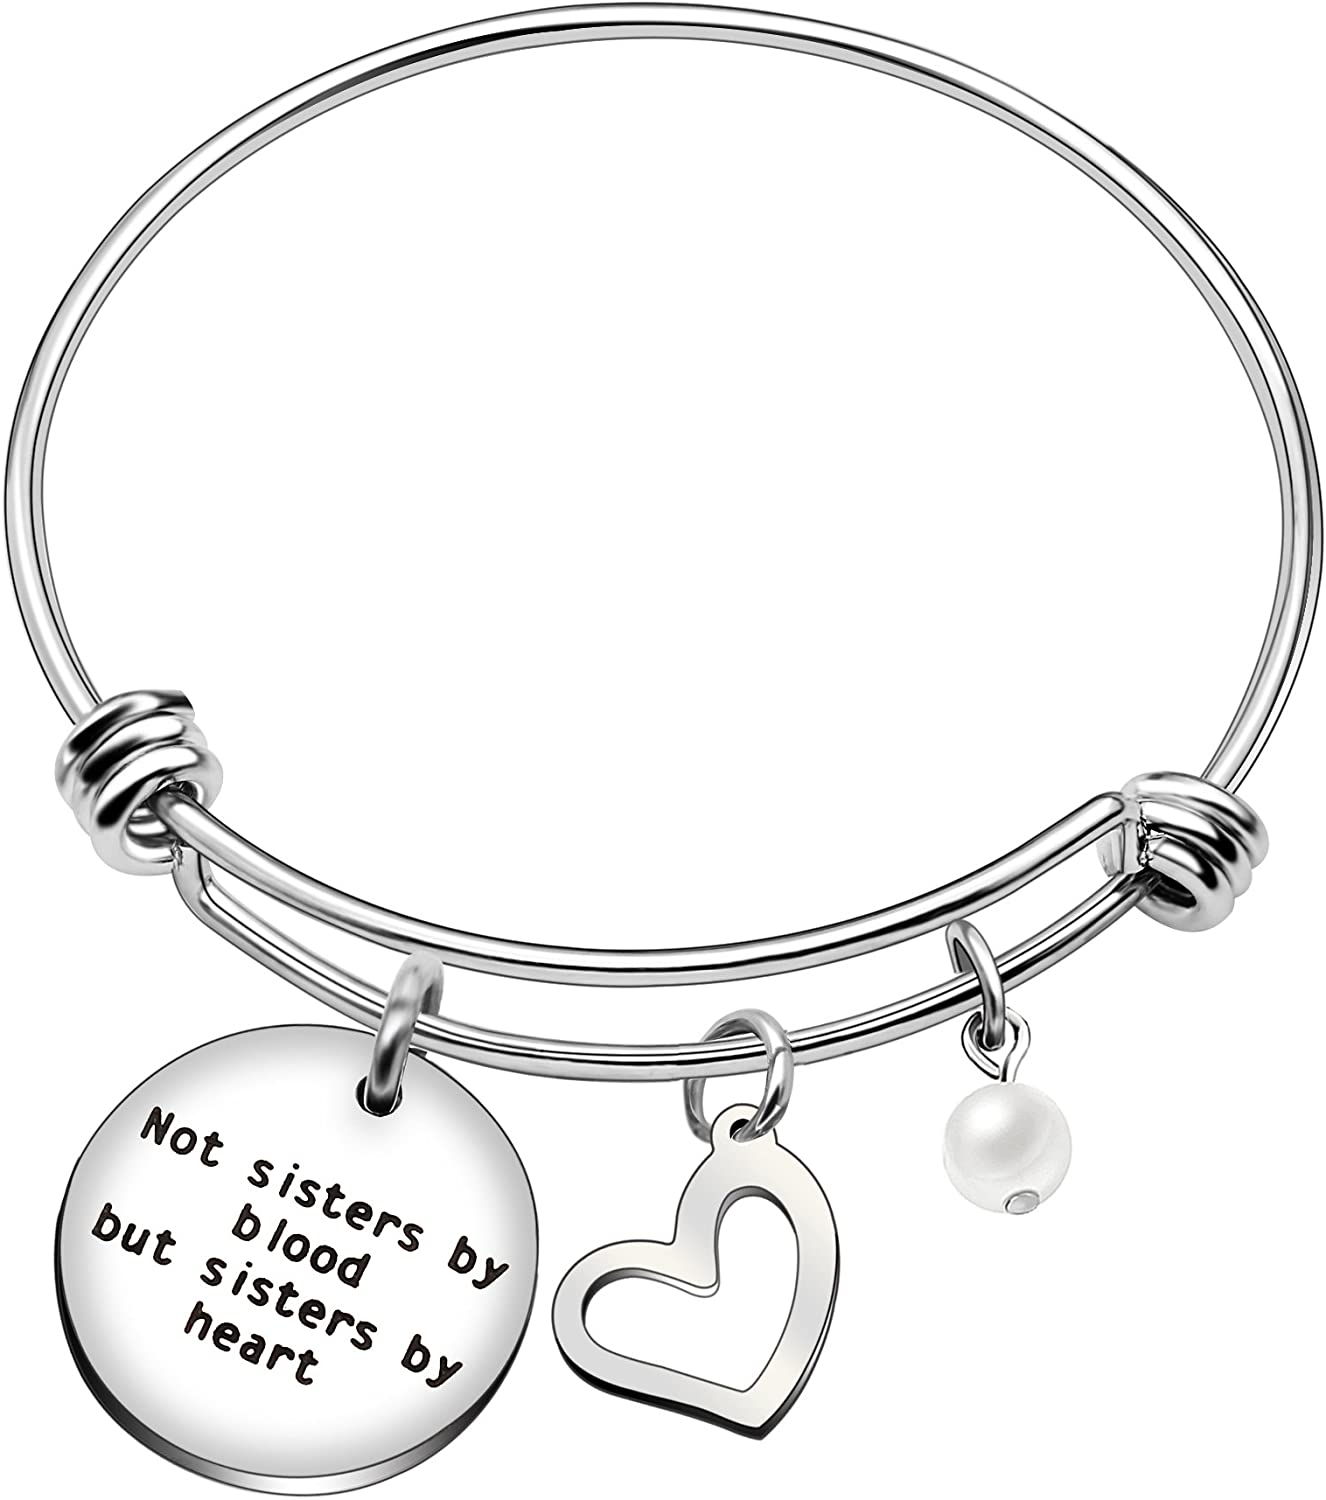 Pulsera para hermanas con texto en inglés «Best Friend Sisters By Blood But Sisters By Heart Pearl»